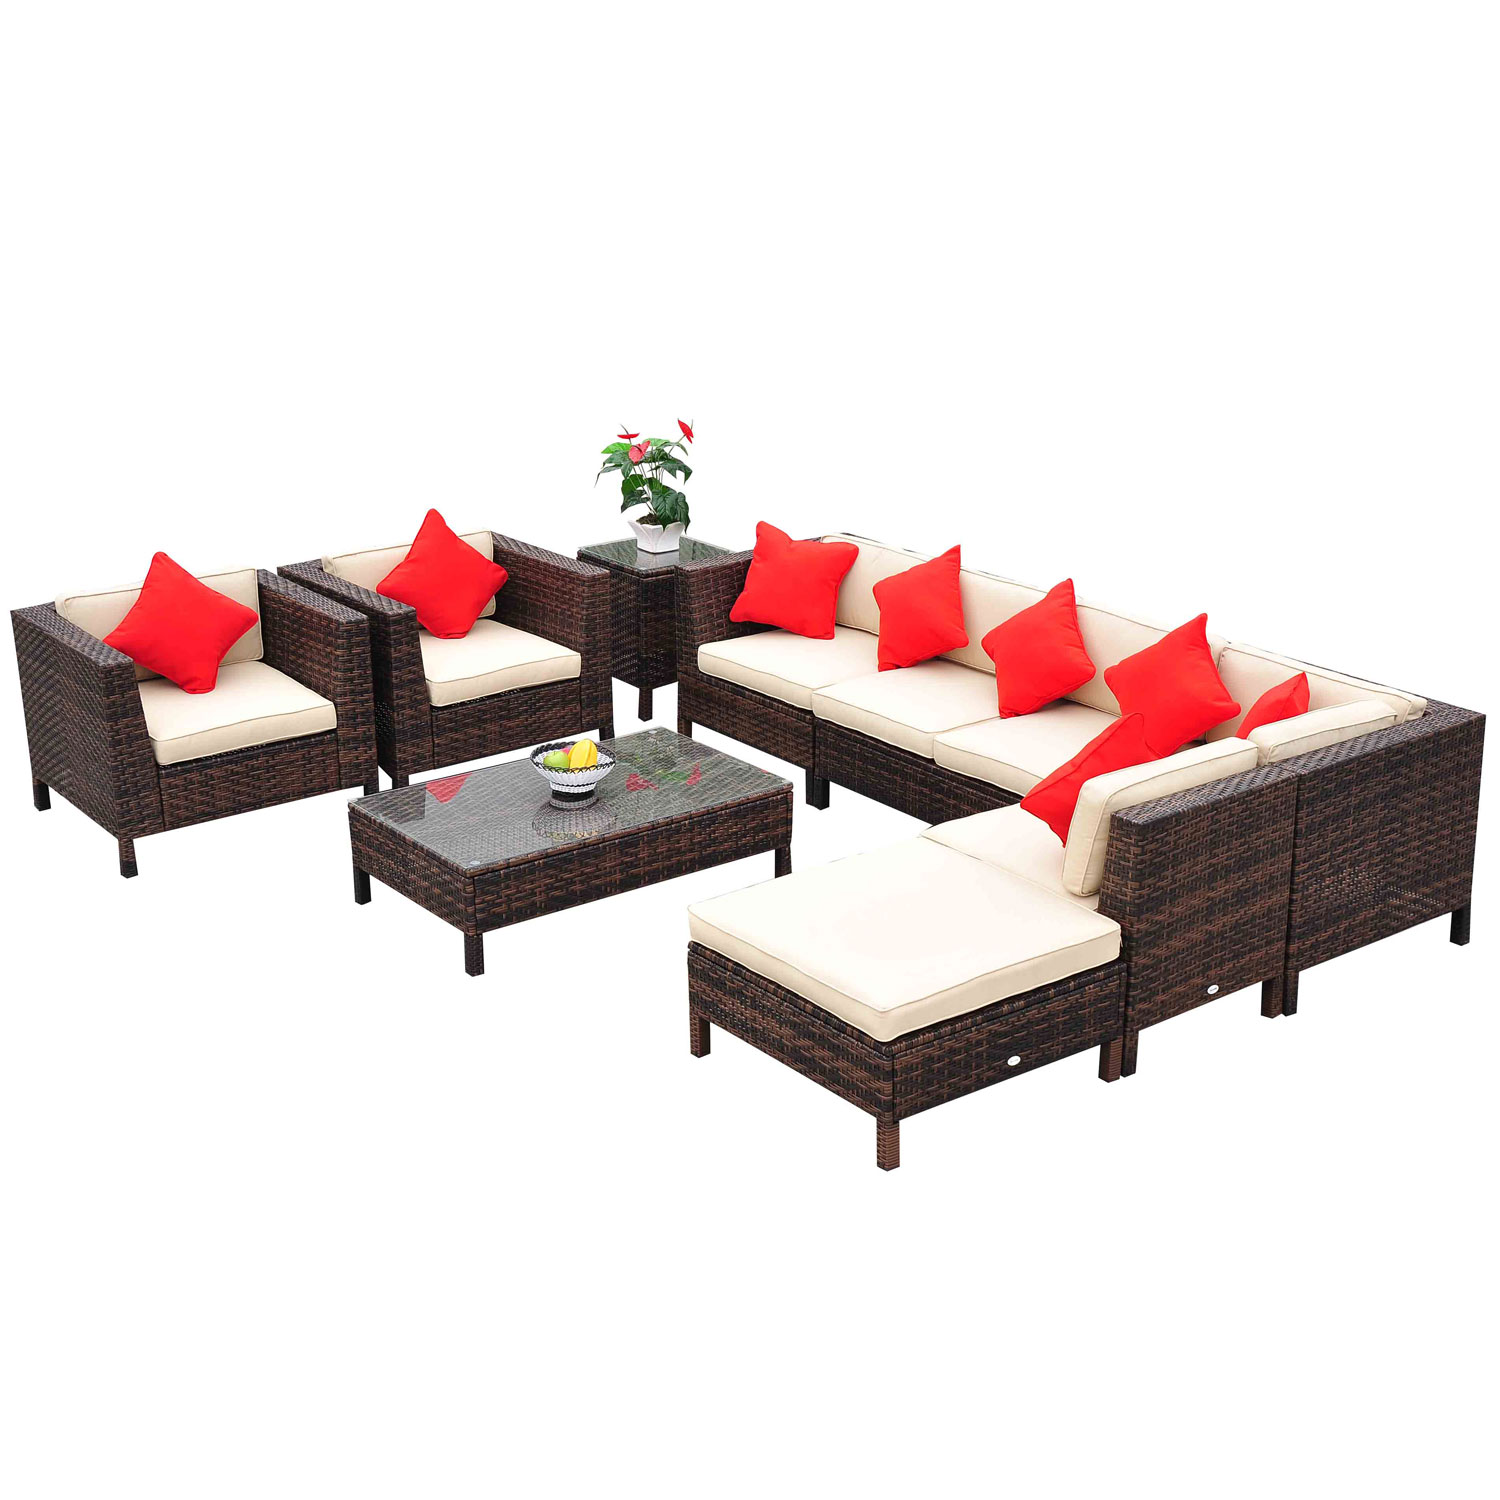 Outsunny 9 Piece Outdoor Rattan Wicker Sofa Sectional Patio Conversation Set by Aosom LLC